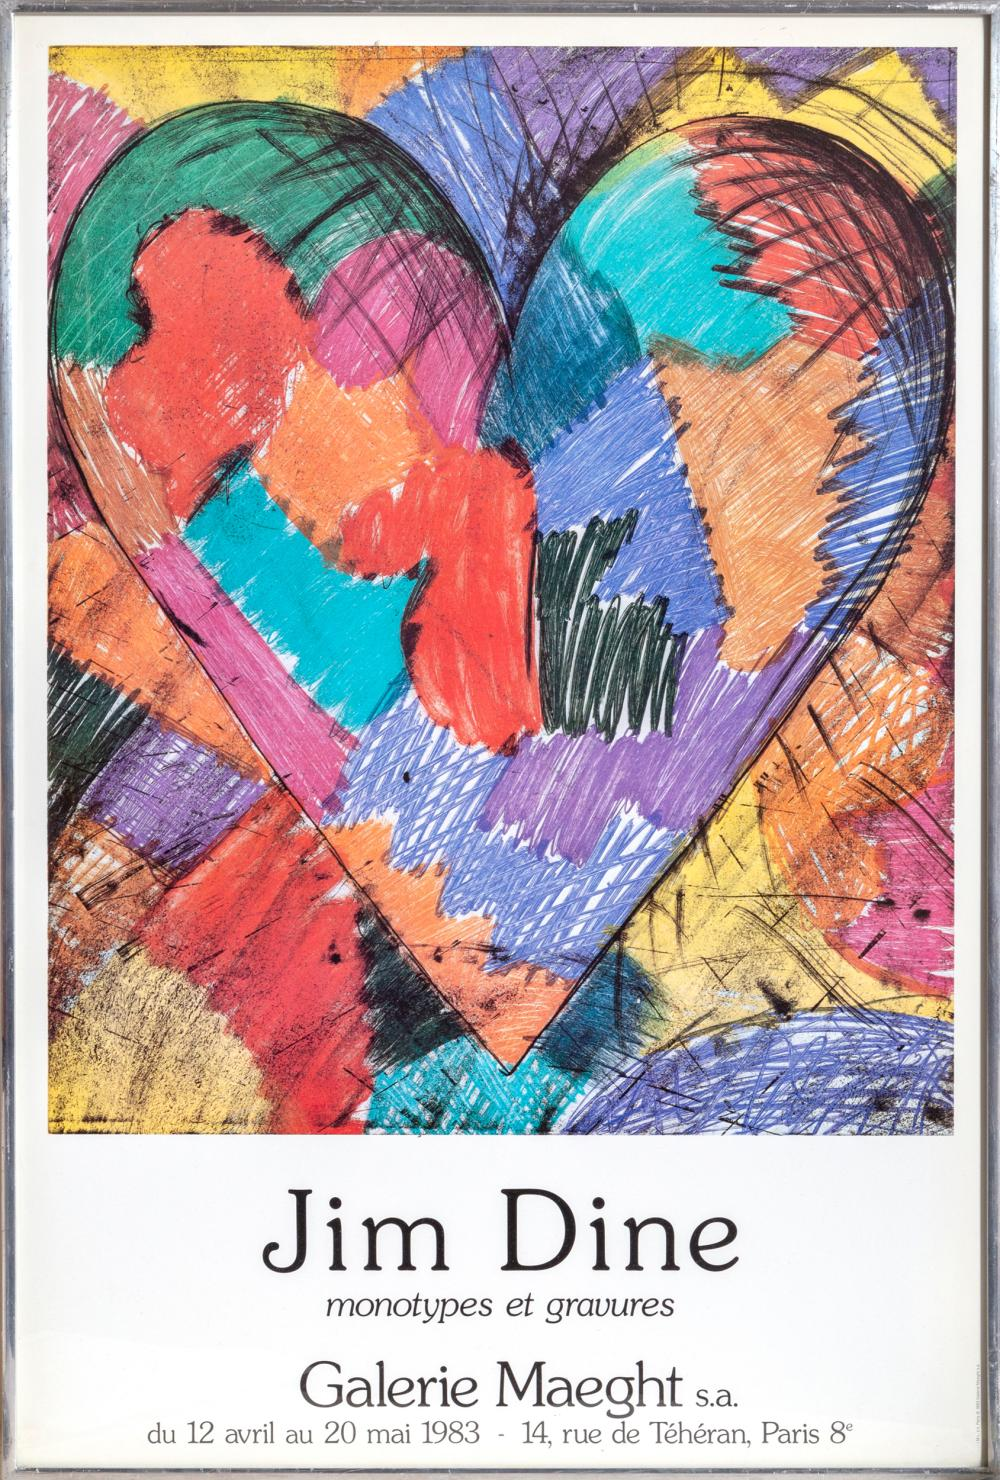 Jim Dine, Galerie Maeght, Hearts, Poster